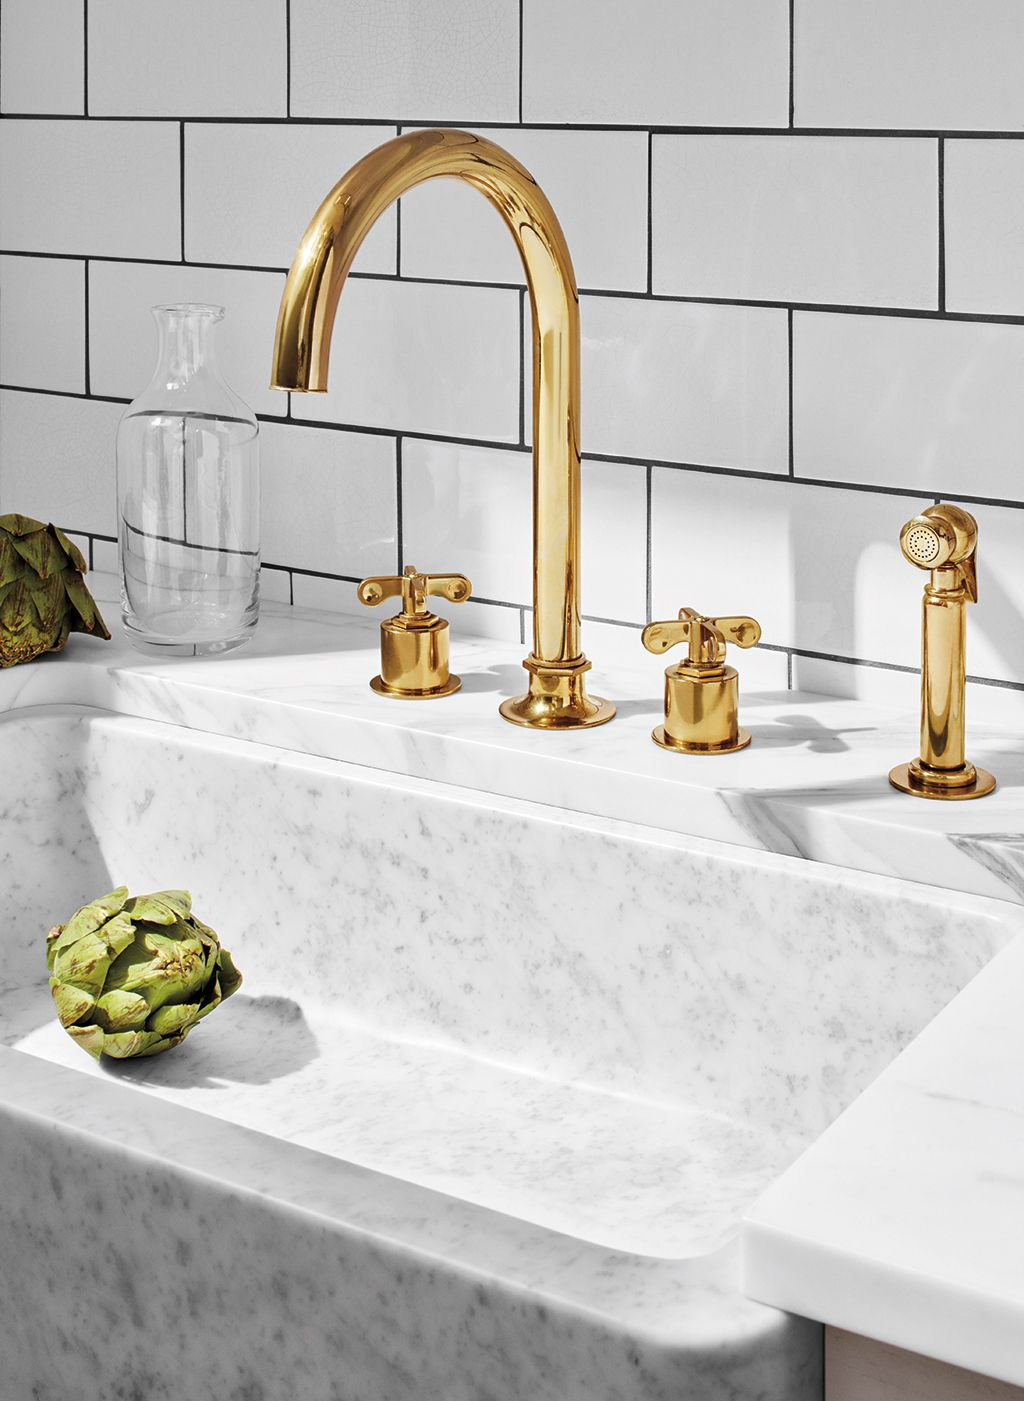 Henry Three Hole Gooseneck Kitchen Faucet Metal Cross Handles And Spray Brass Kitchen Faucet Gooseneck Kitchen Faucet Brass Kitchen Tap